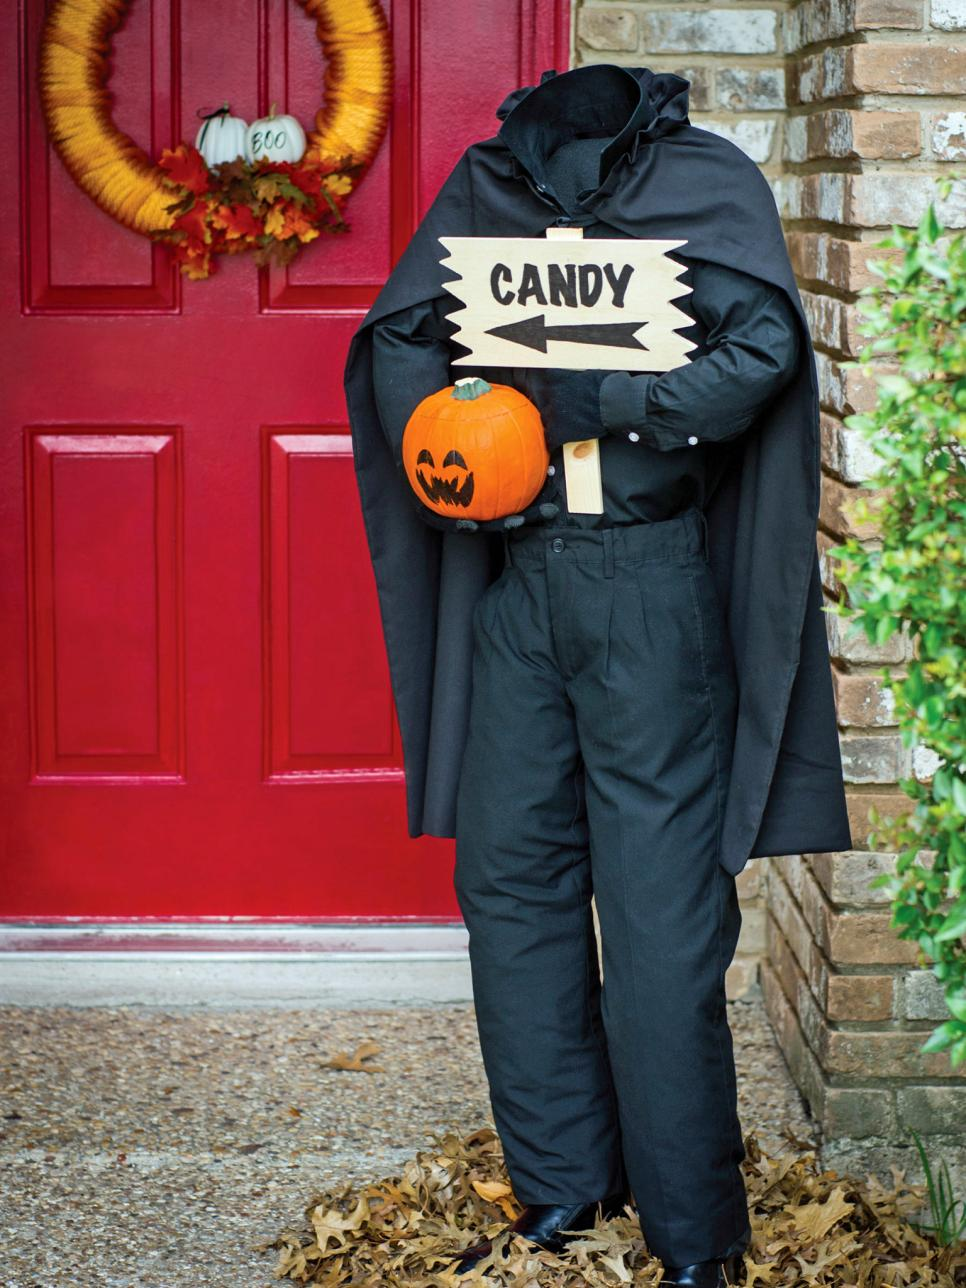 15 Great Decorating Ideas For Halloween Delightfull Blog - Use-pumpkins-to-decorate-your-house-for-halloween